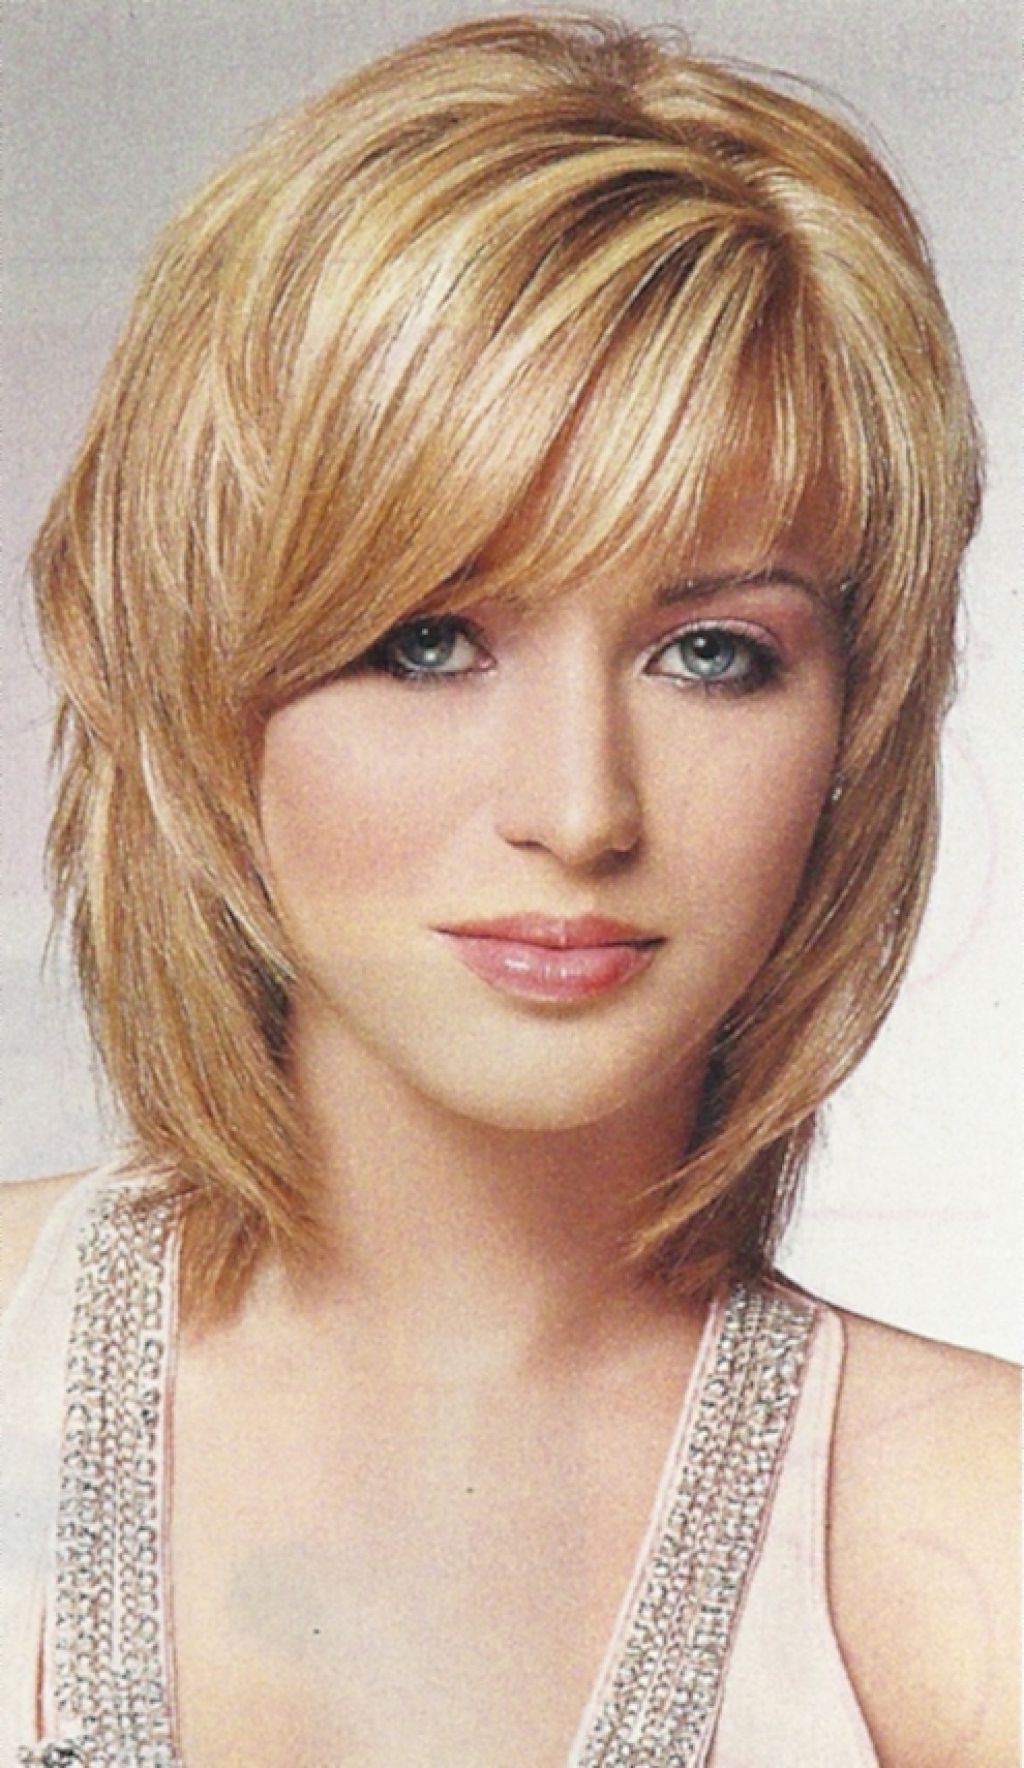 Cute Medium Short Hairstyles – Hairstyle For Women & Man Intended For Cute Shaggy Short Haircuts (View 13 of 25)